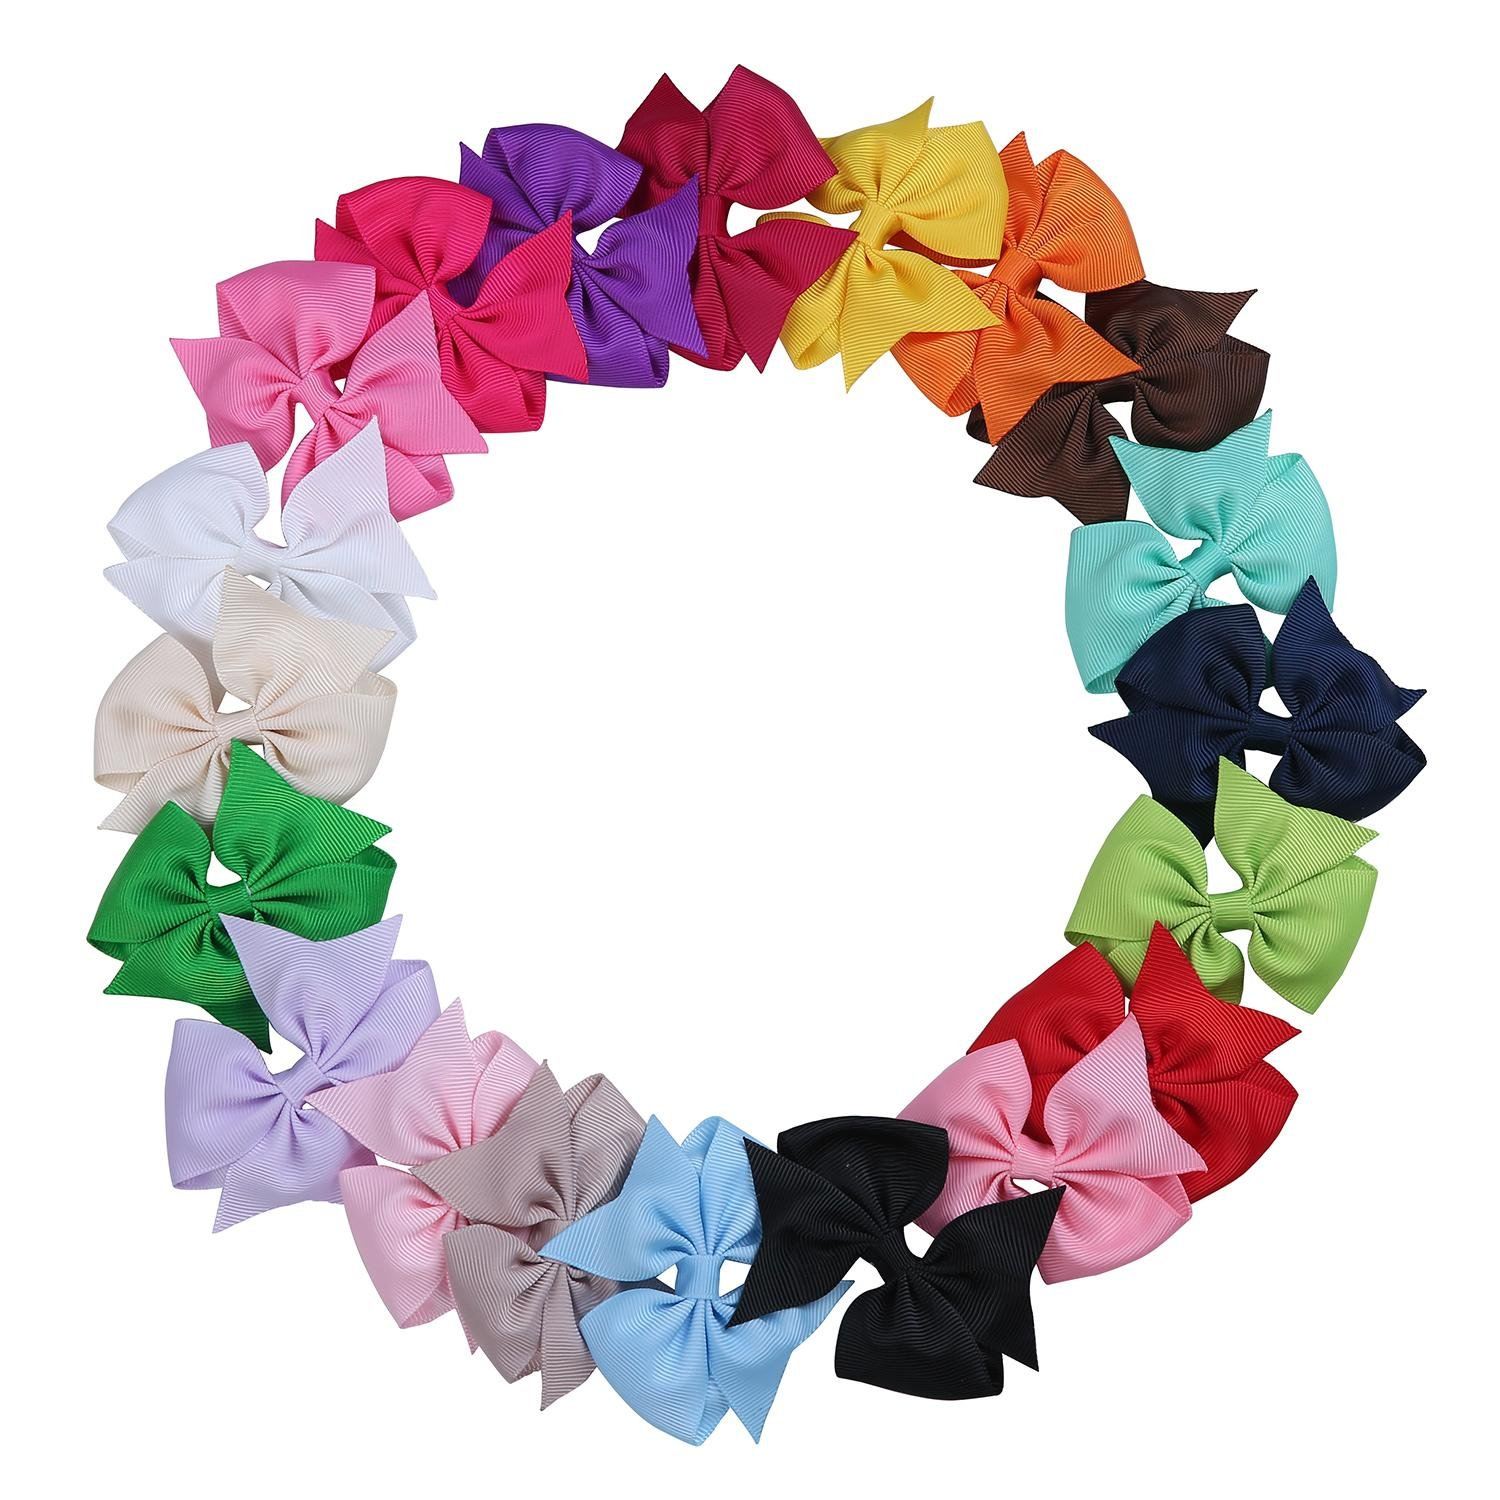 niceEshop(TM) Baby Boutique Girls Ribbon Bowknot Hair Clips and Rabbit Ear Headbands